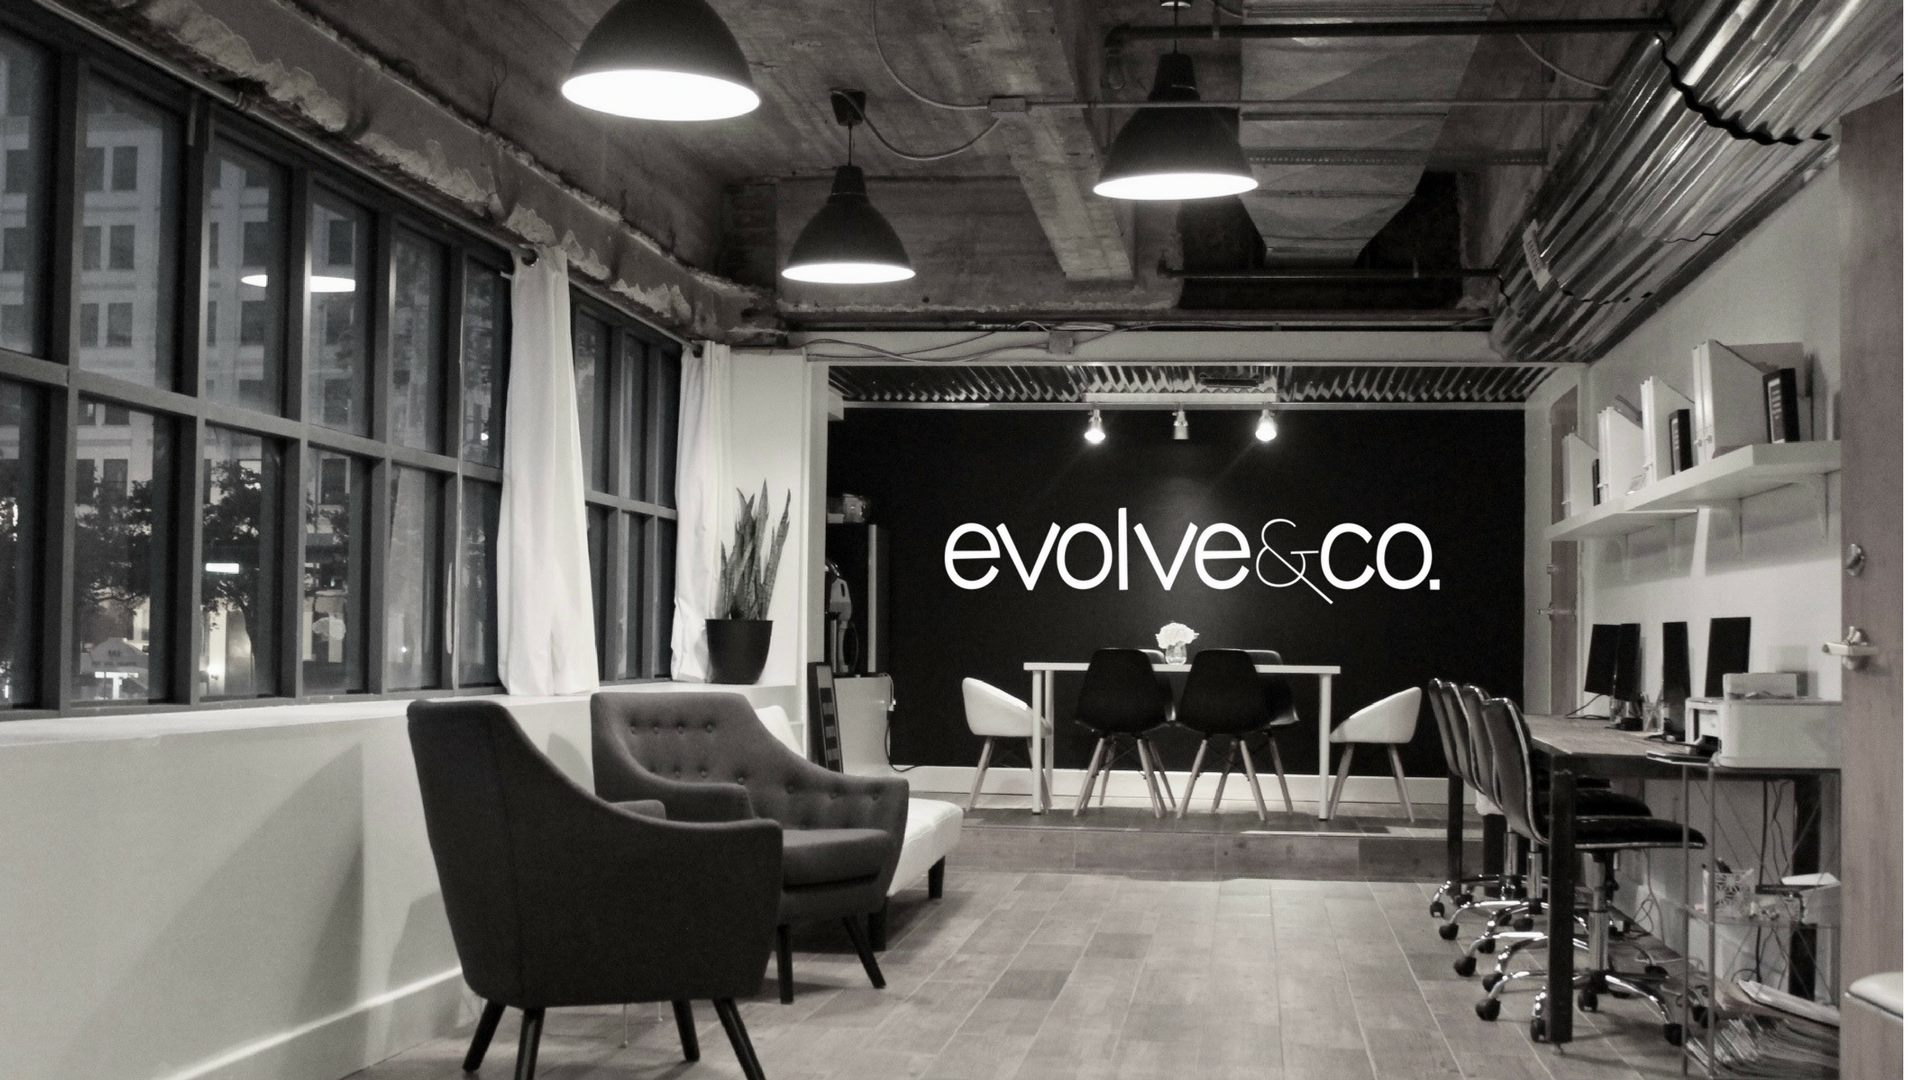 Evolve & Co Headquarters